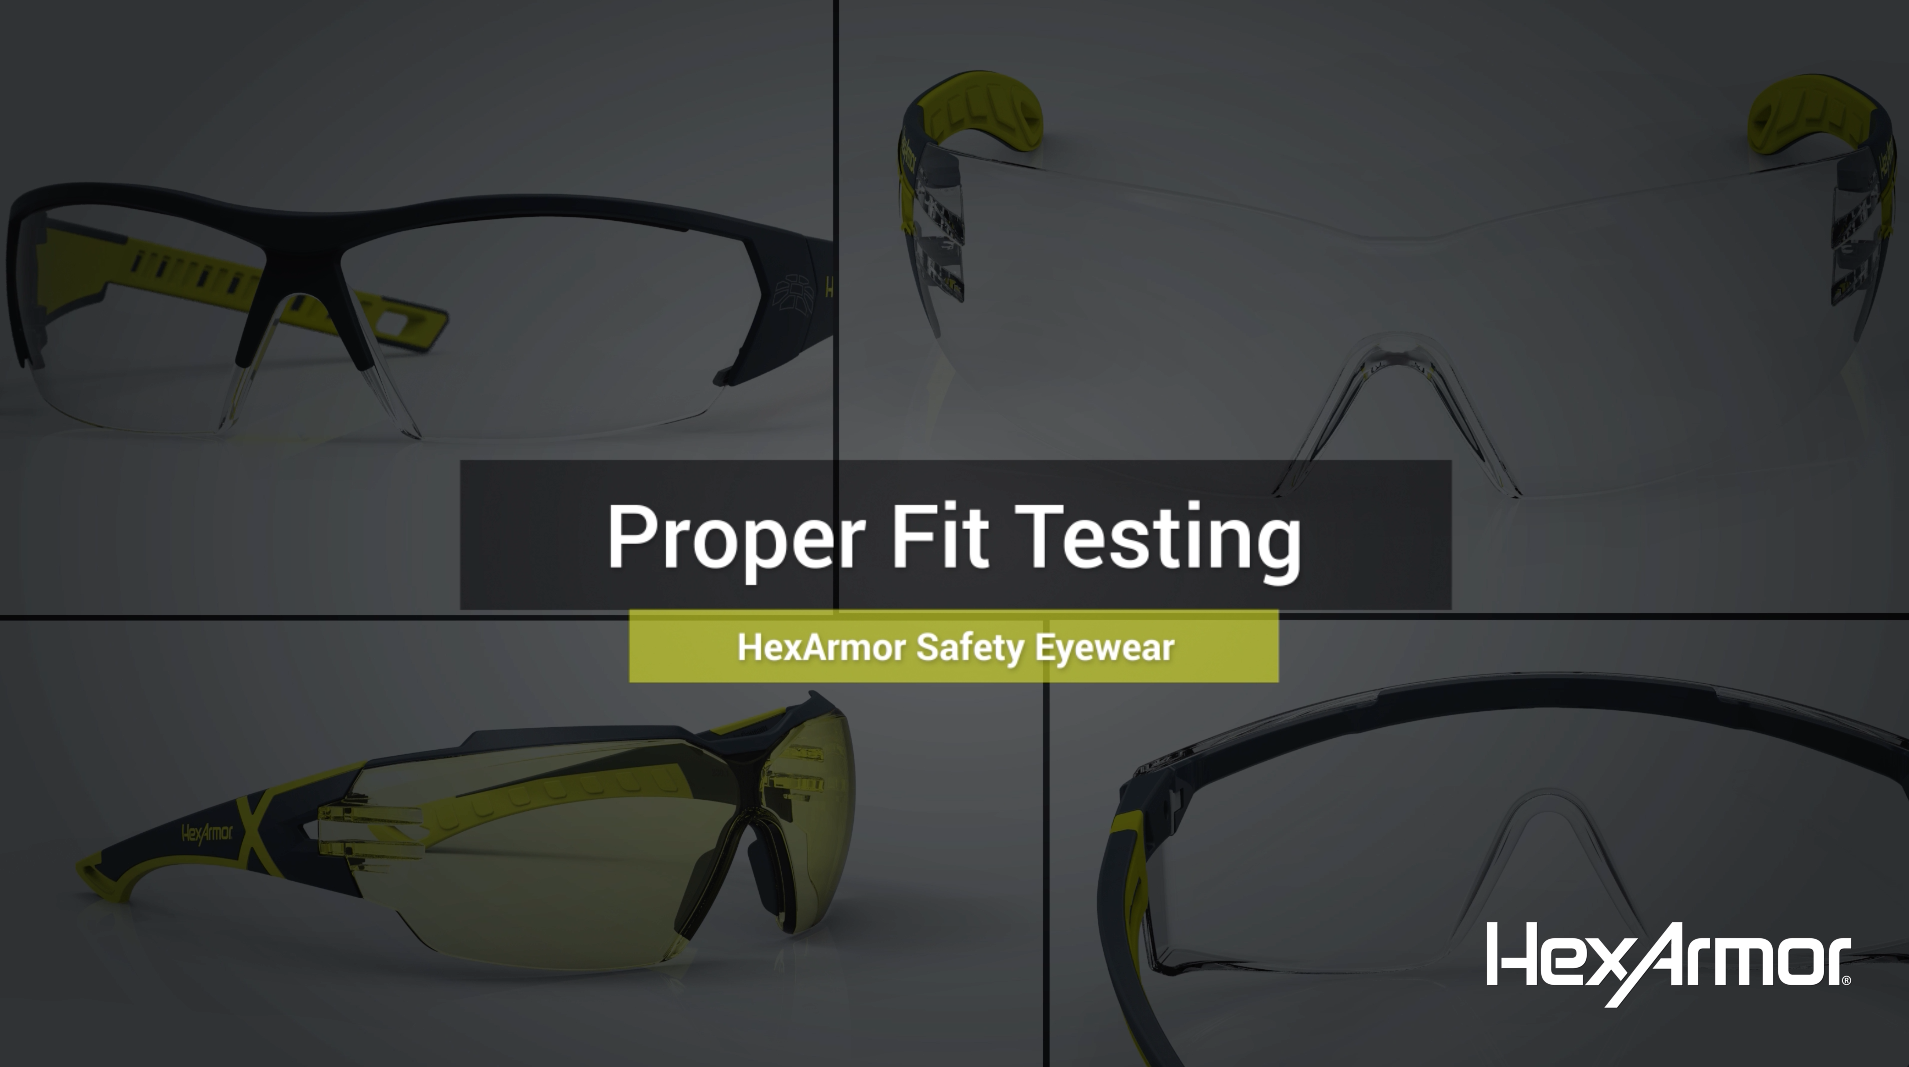 Proper Fitting — HexArmor Safety Eyewear